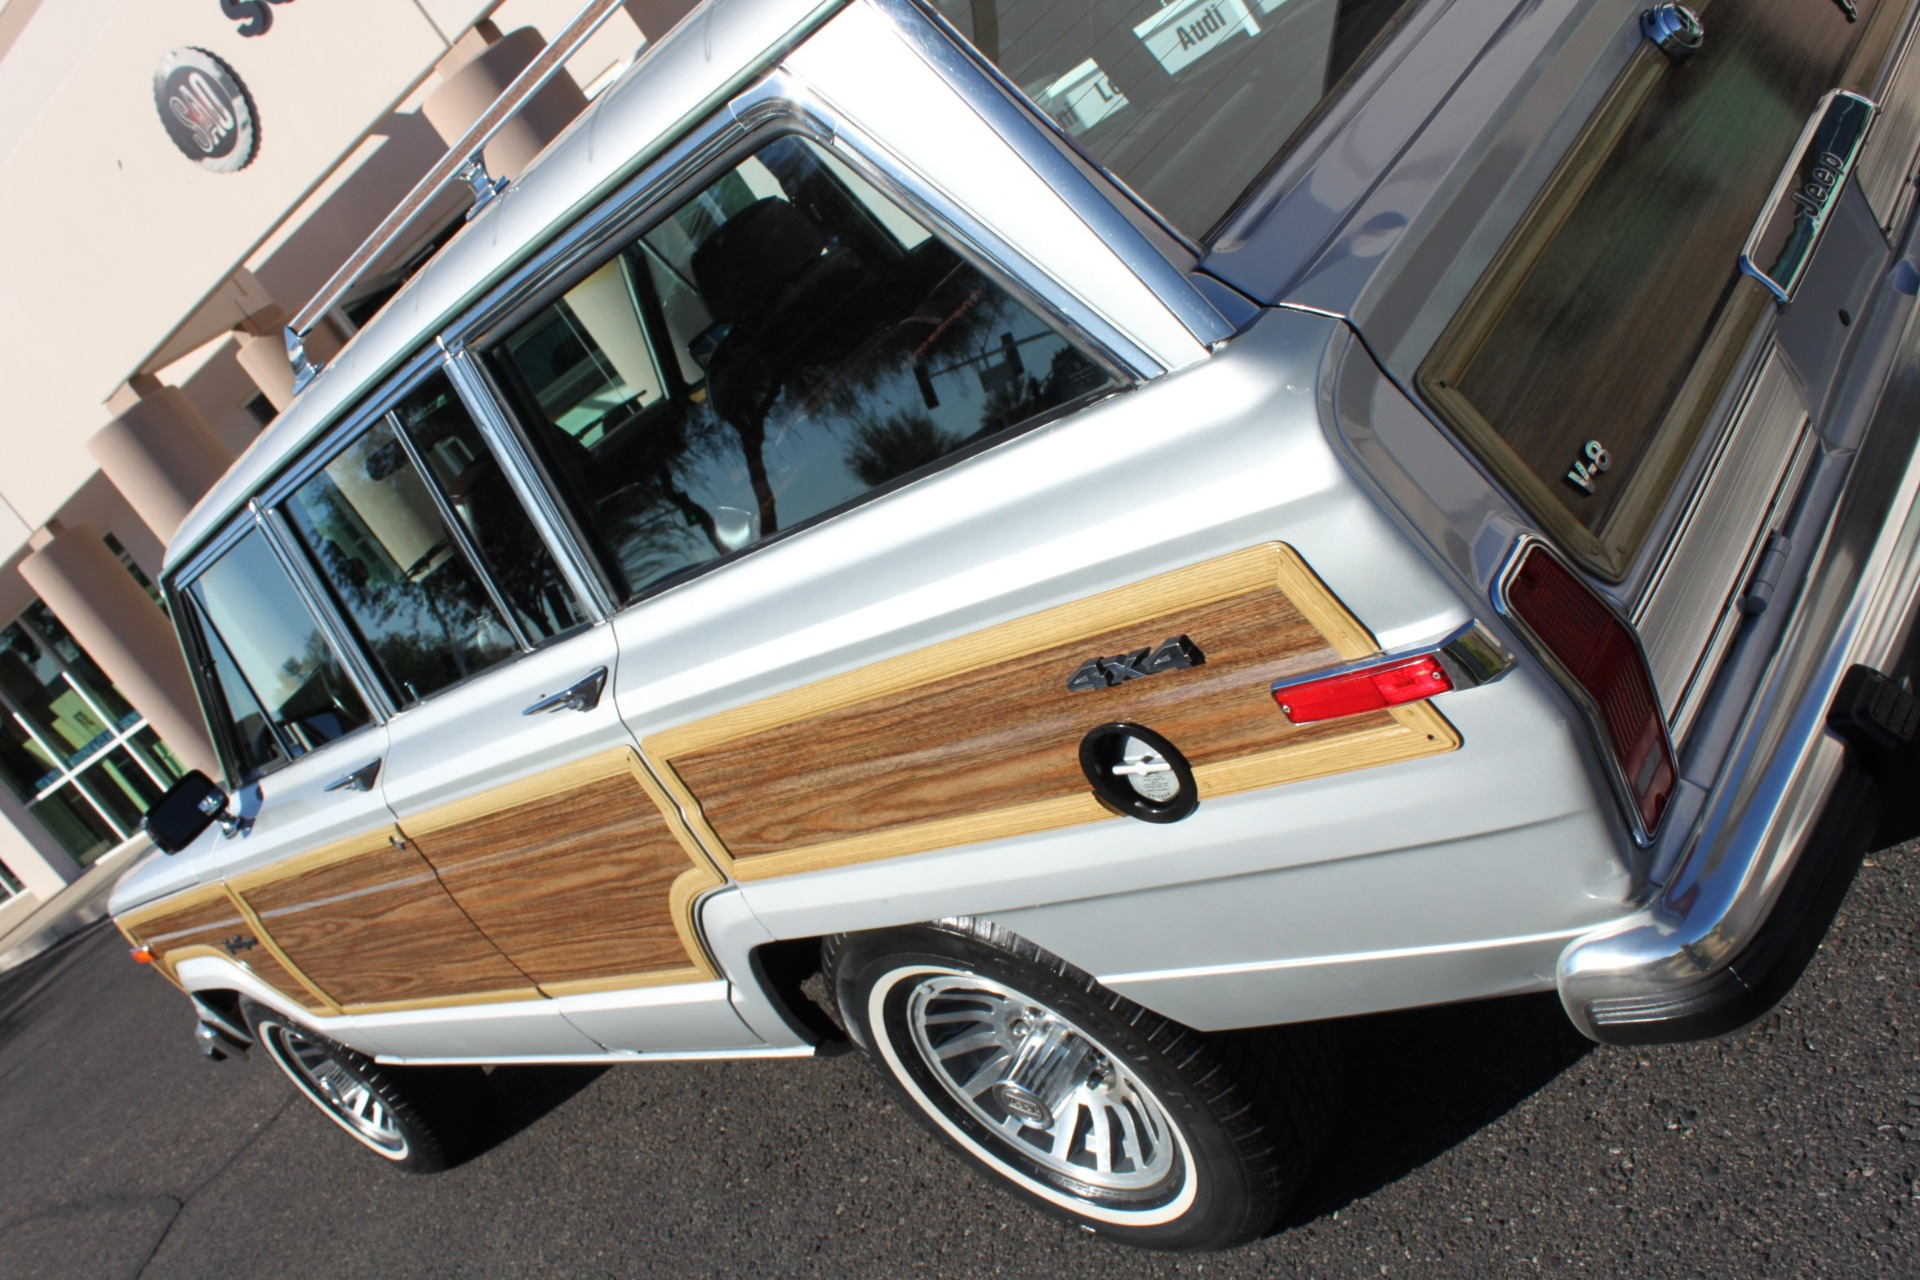 Used-1989-Jeep-Grand-Wagoneer-Audi